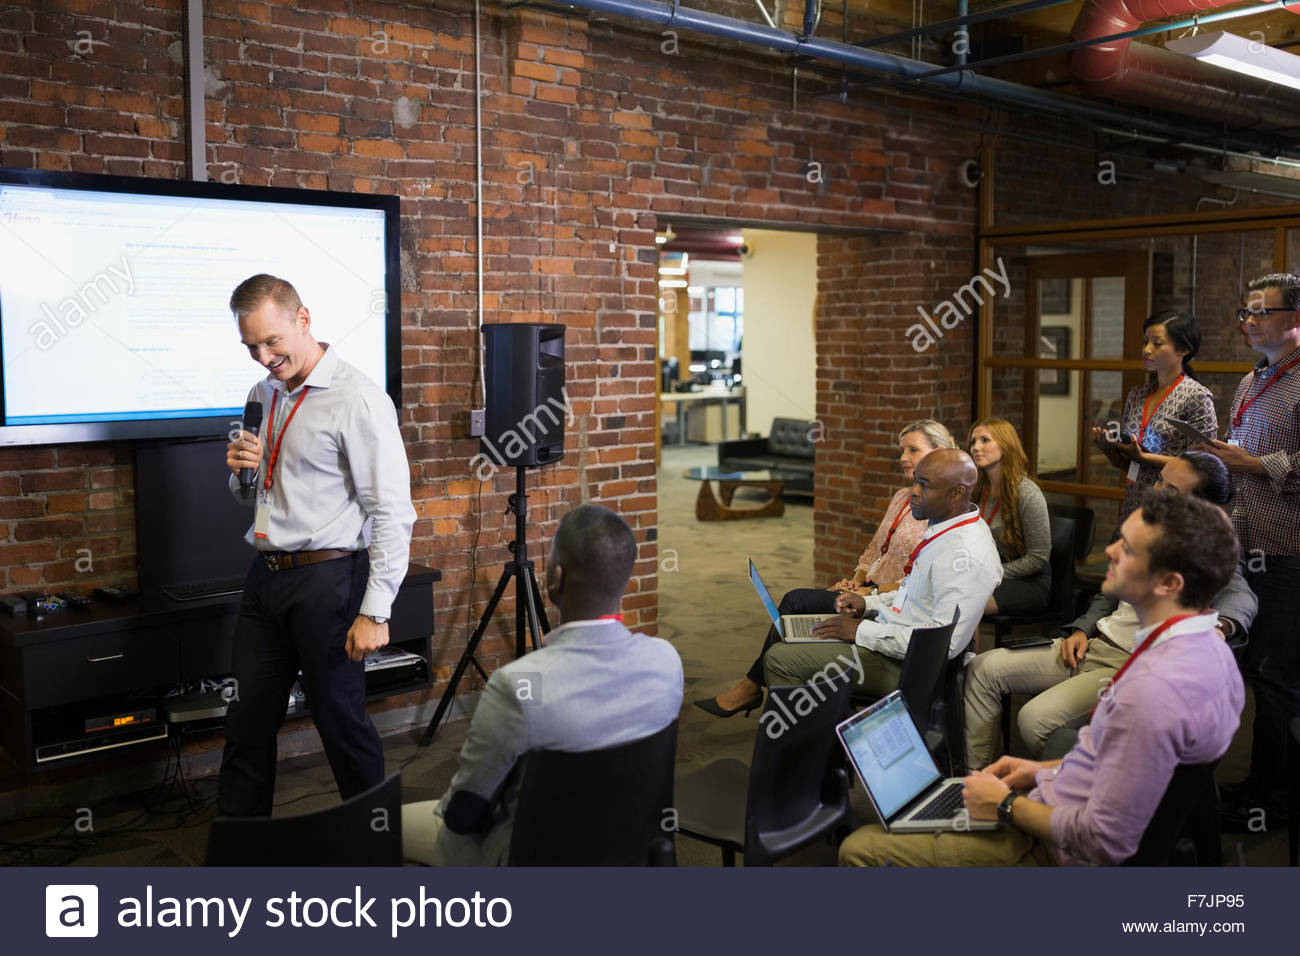 Businessman leading conference presentation - Stock Image